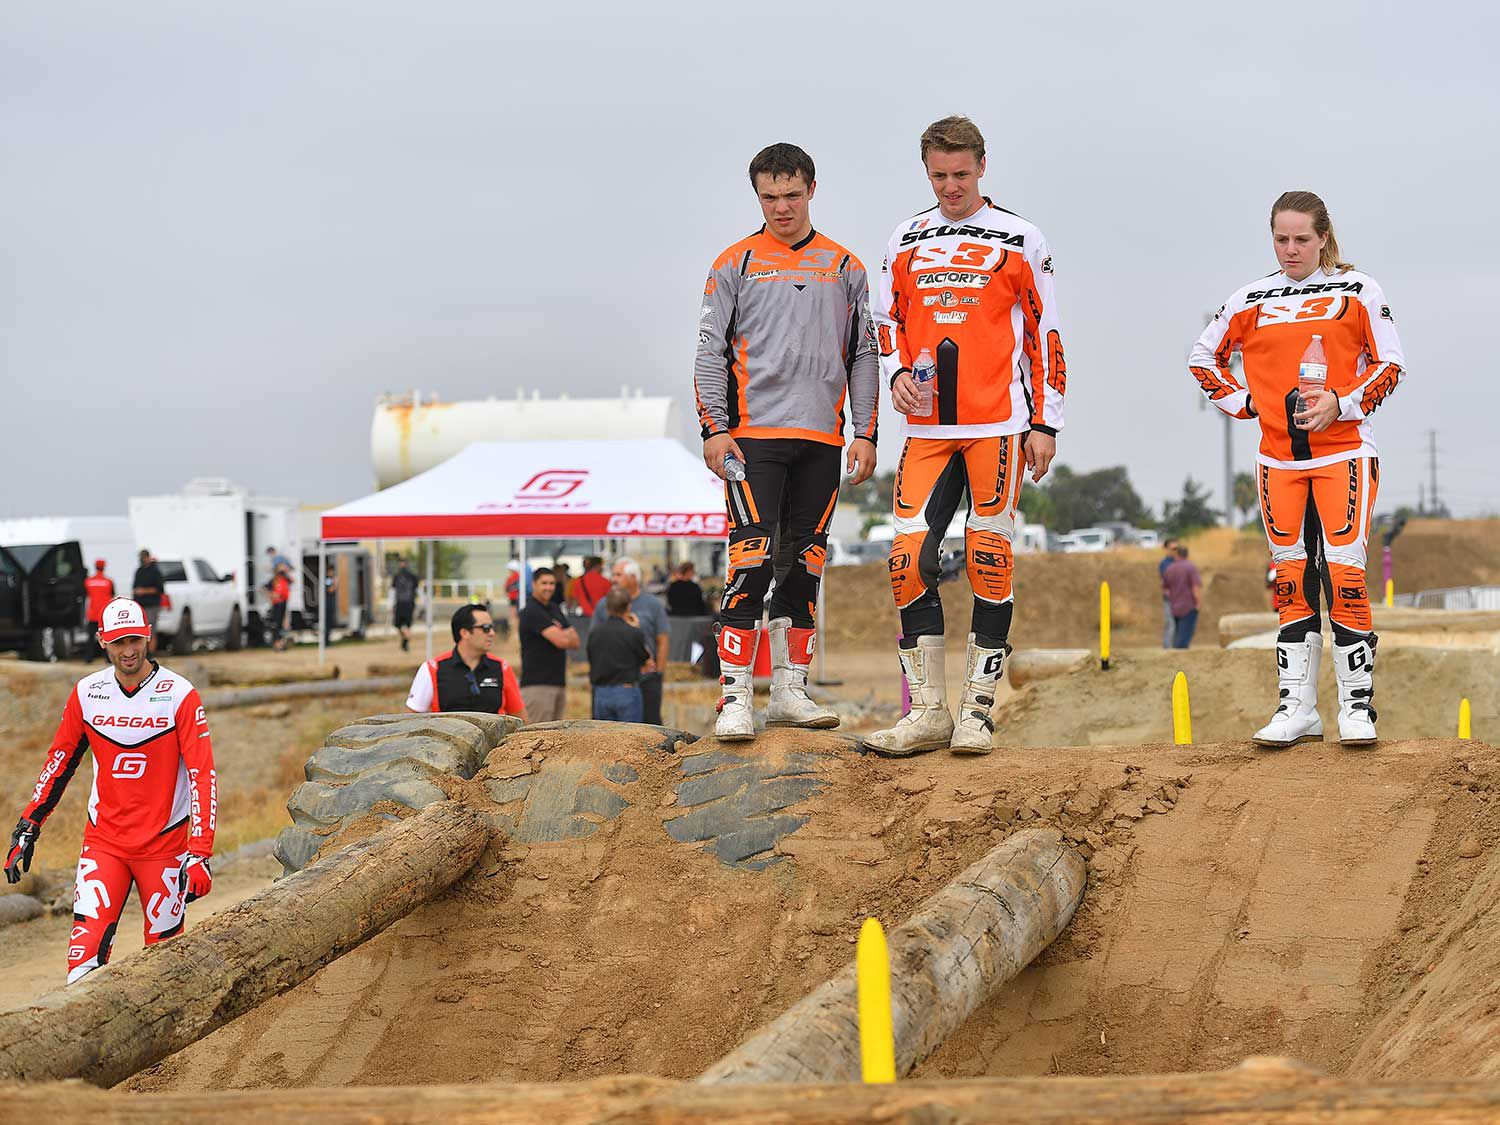 The Invitational strayed from normal trials format by incorporating a timed lap on part of the KTM/Husqvarna EnduroCross practice track, the fastest rider getting to start the main event last. That way, he (or she) could watch others be the guinea pigs and see which lines might be best. Here, from left, are Team Scorpa's Will and Alex Myers, and Kylee Sweeten.